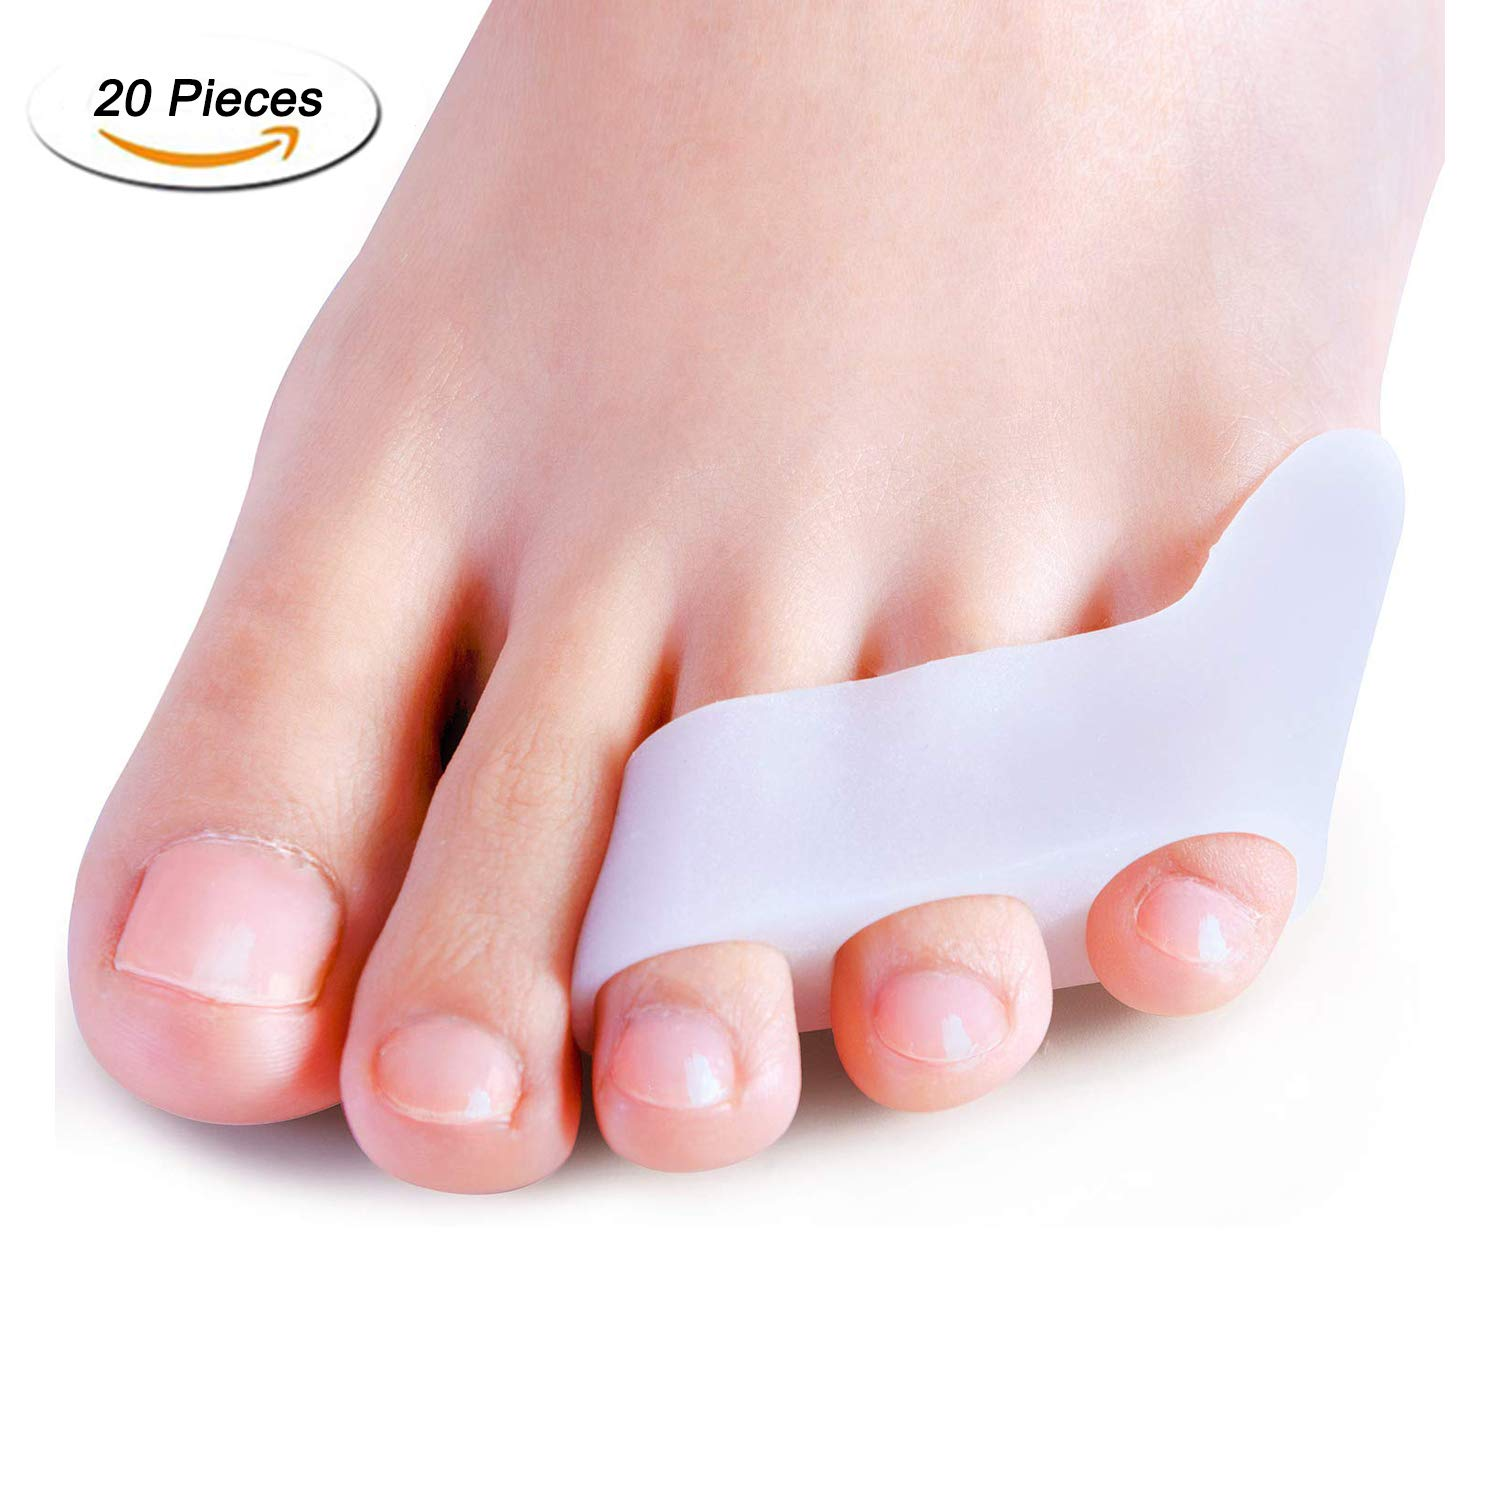 Dr.Pedi 20 Pack Pinky Teo Straightener with 3 Loops for Overlapping Toes Triple Gel Toe Separators Curled Pinkie Toe Bunion Shield by Dr.Pedi